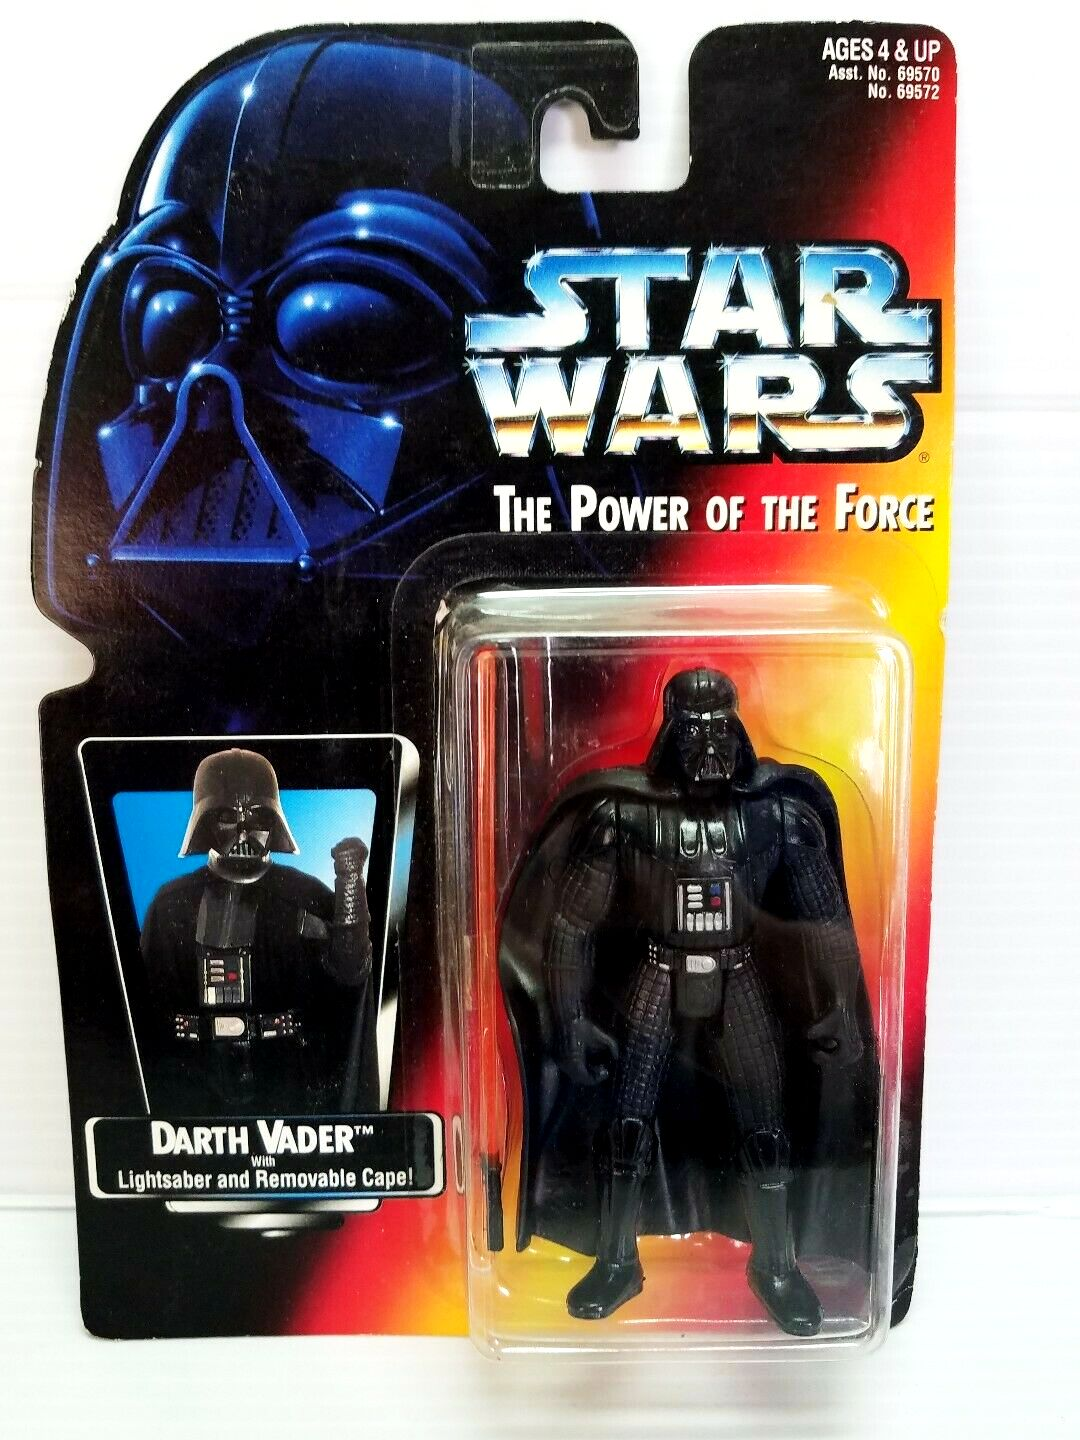 Star Wars Fighter Pods Series 4 #3 DARTH VADER HOLOGRAM Micro Figure